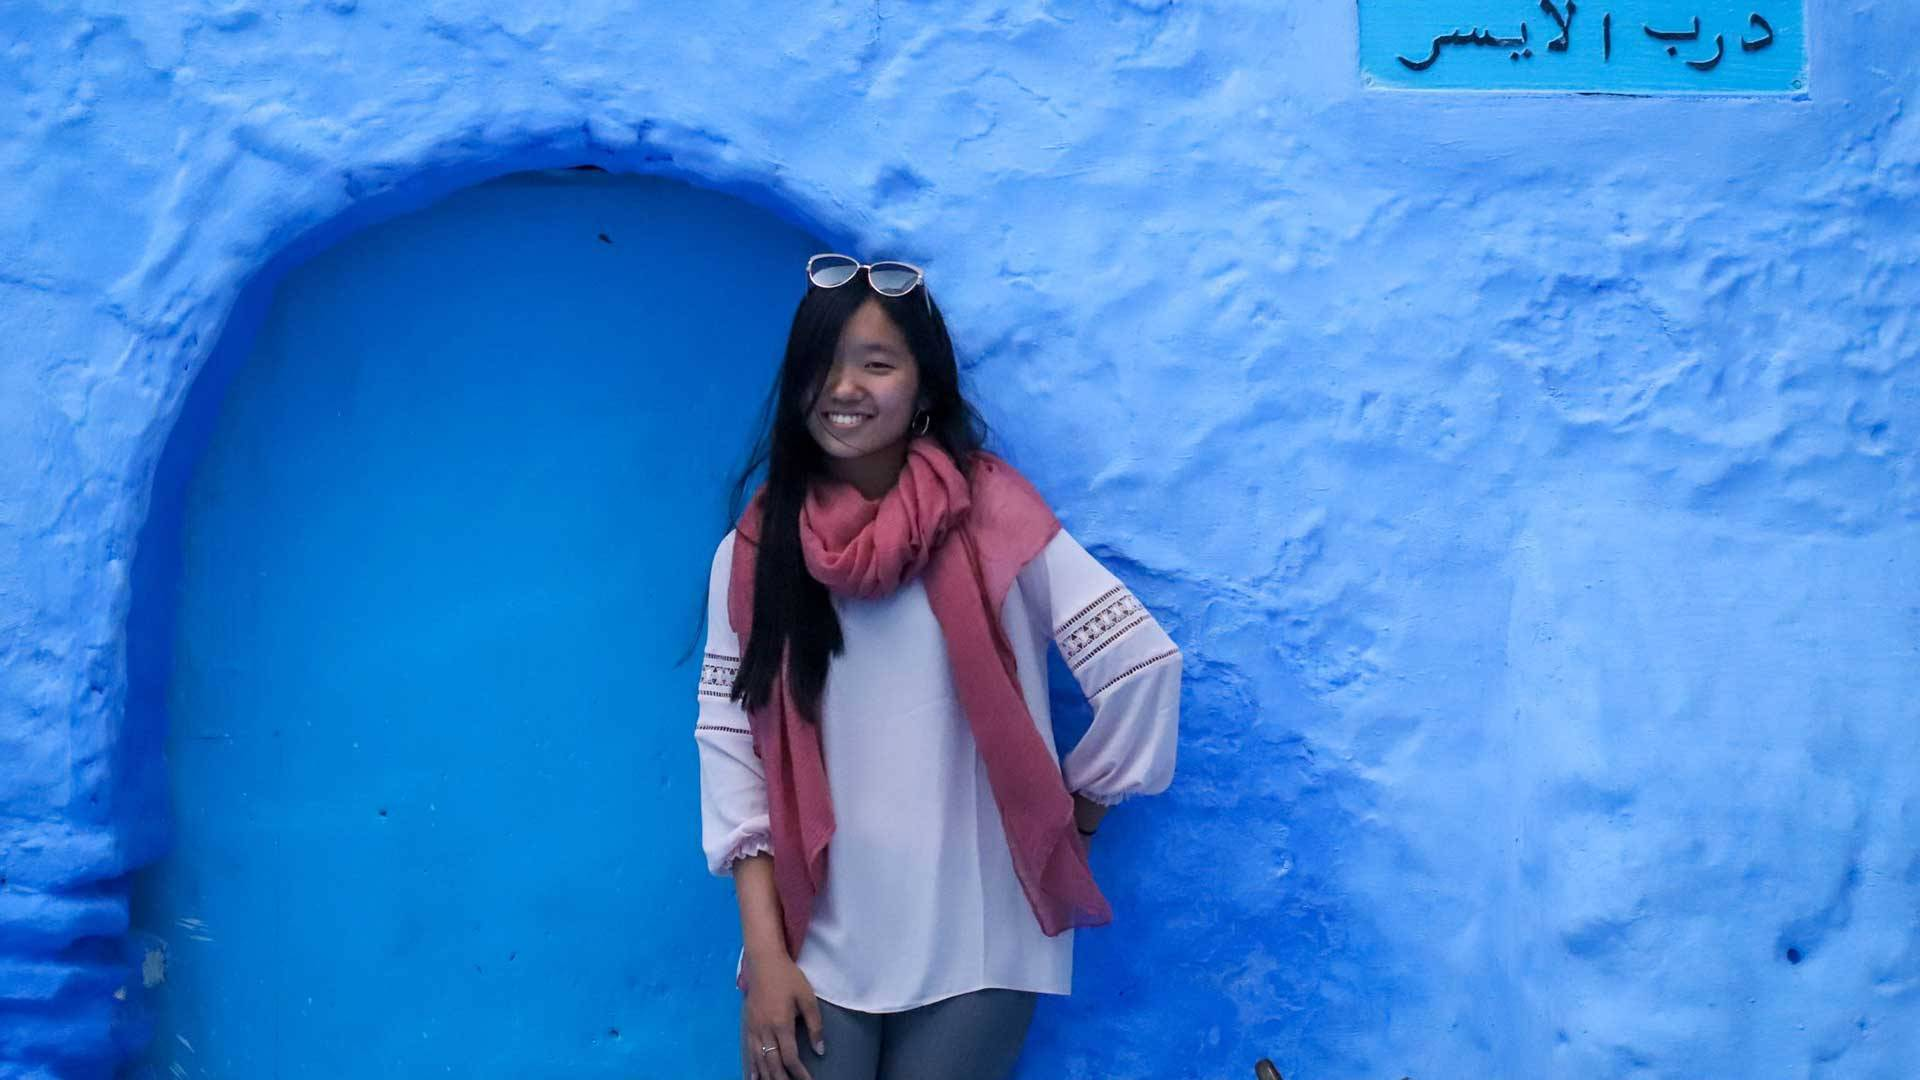 Justine Hu leans against a blue wall with a sign in Arabic on it